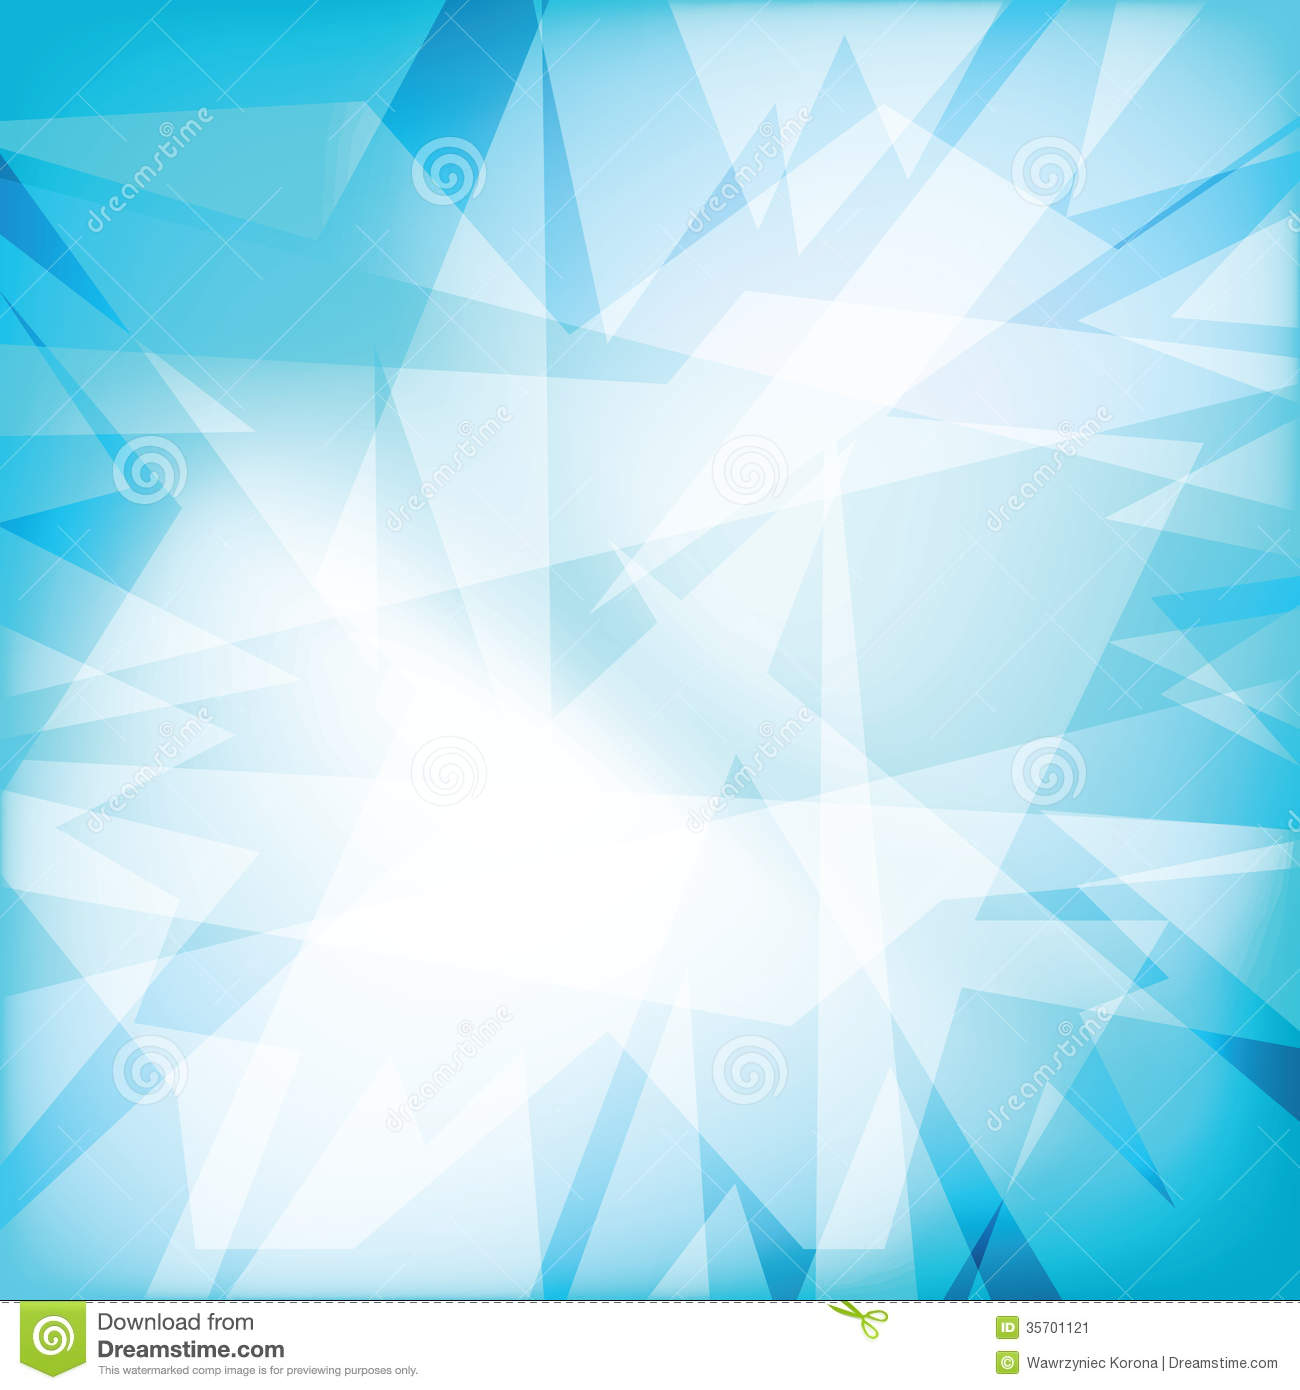 Abstract Futuristy Crystal Background Stock Image - Image: 35701121